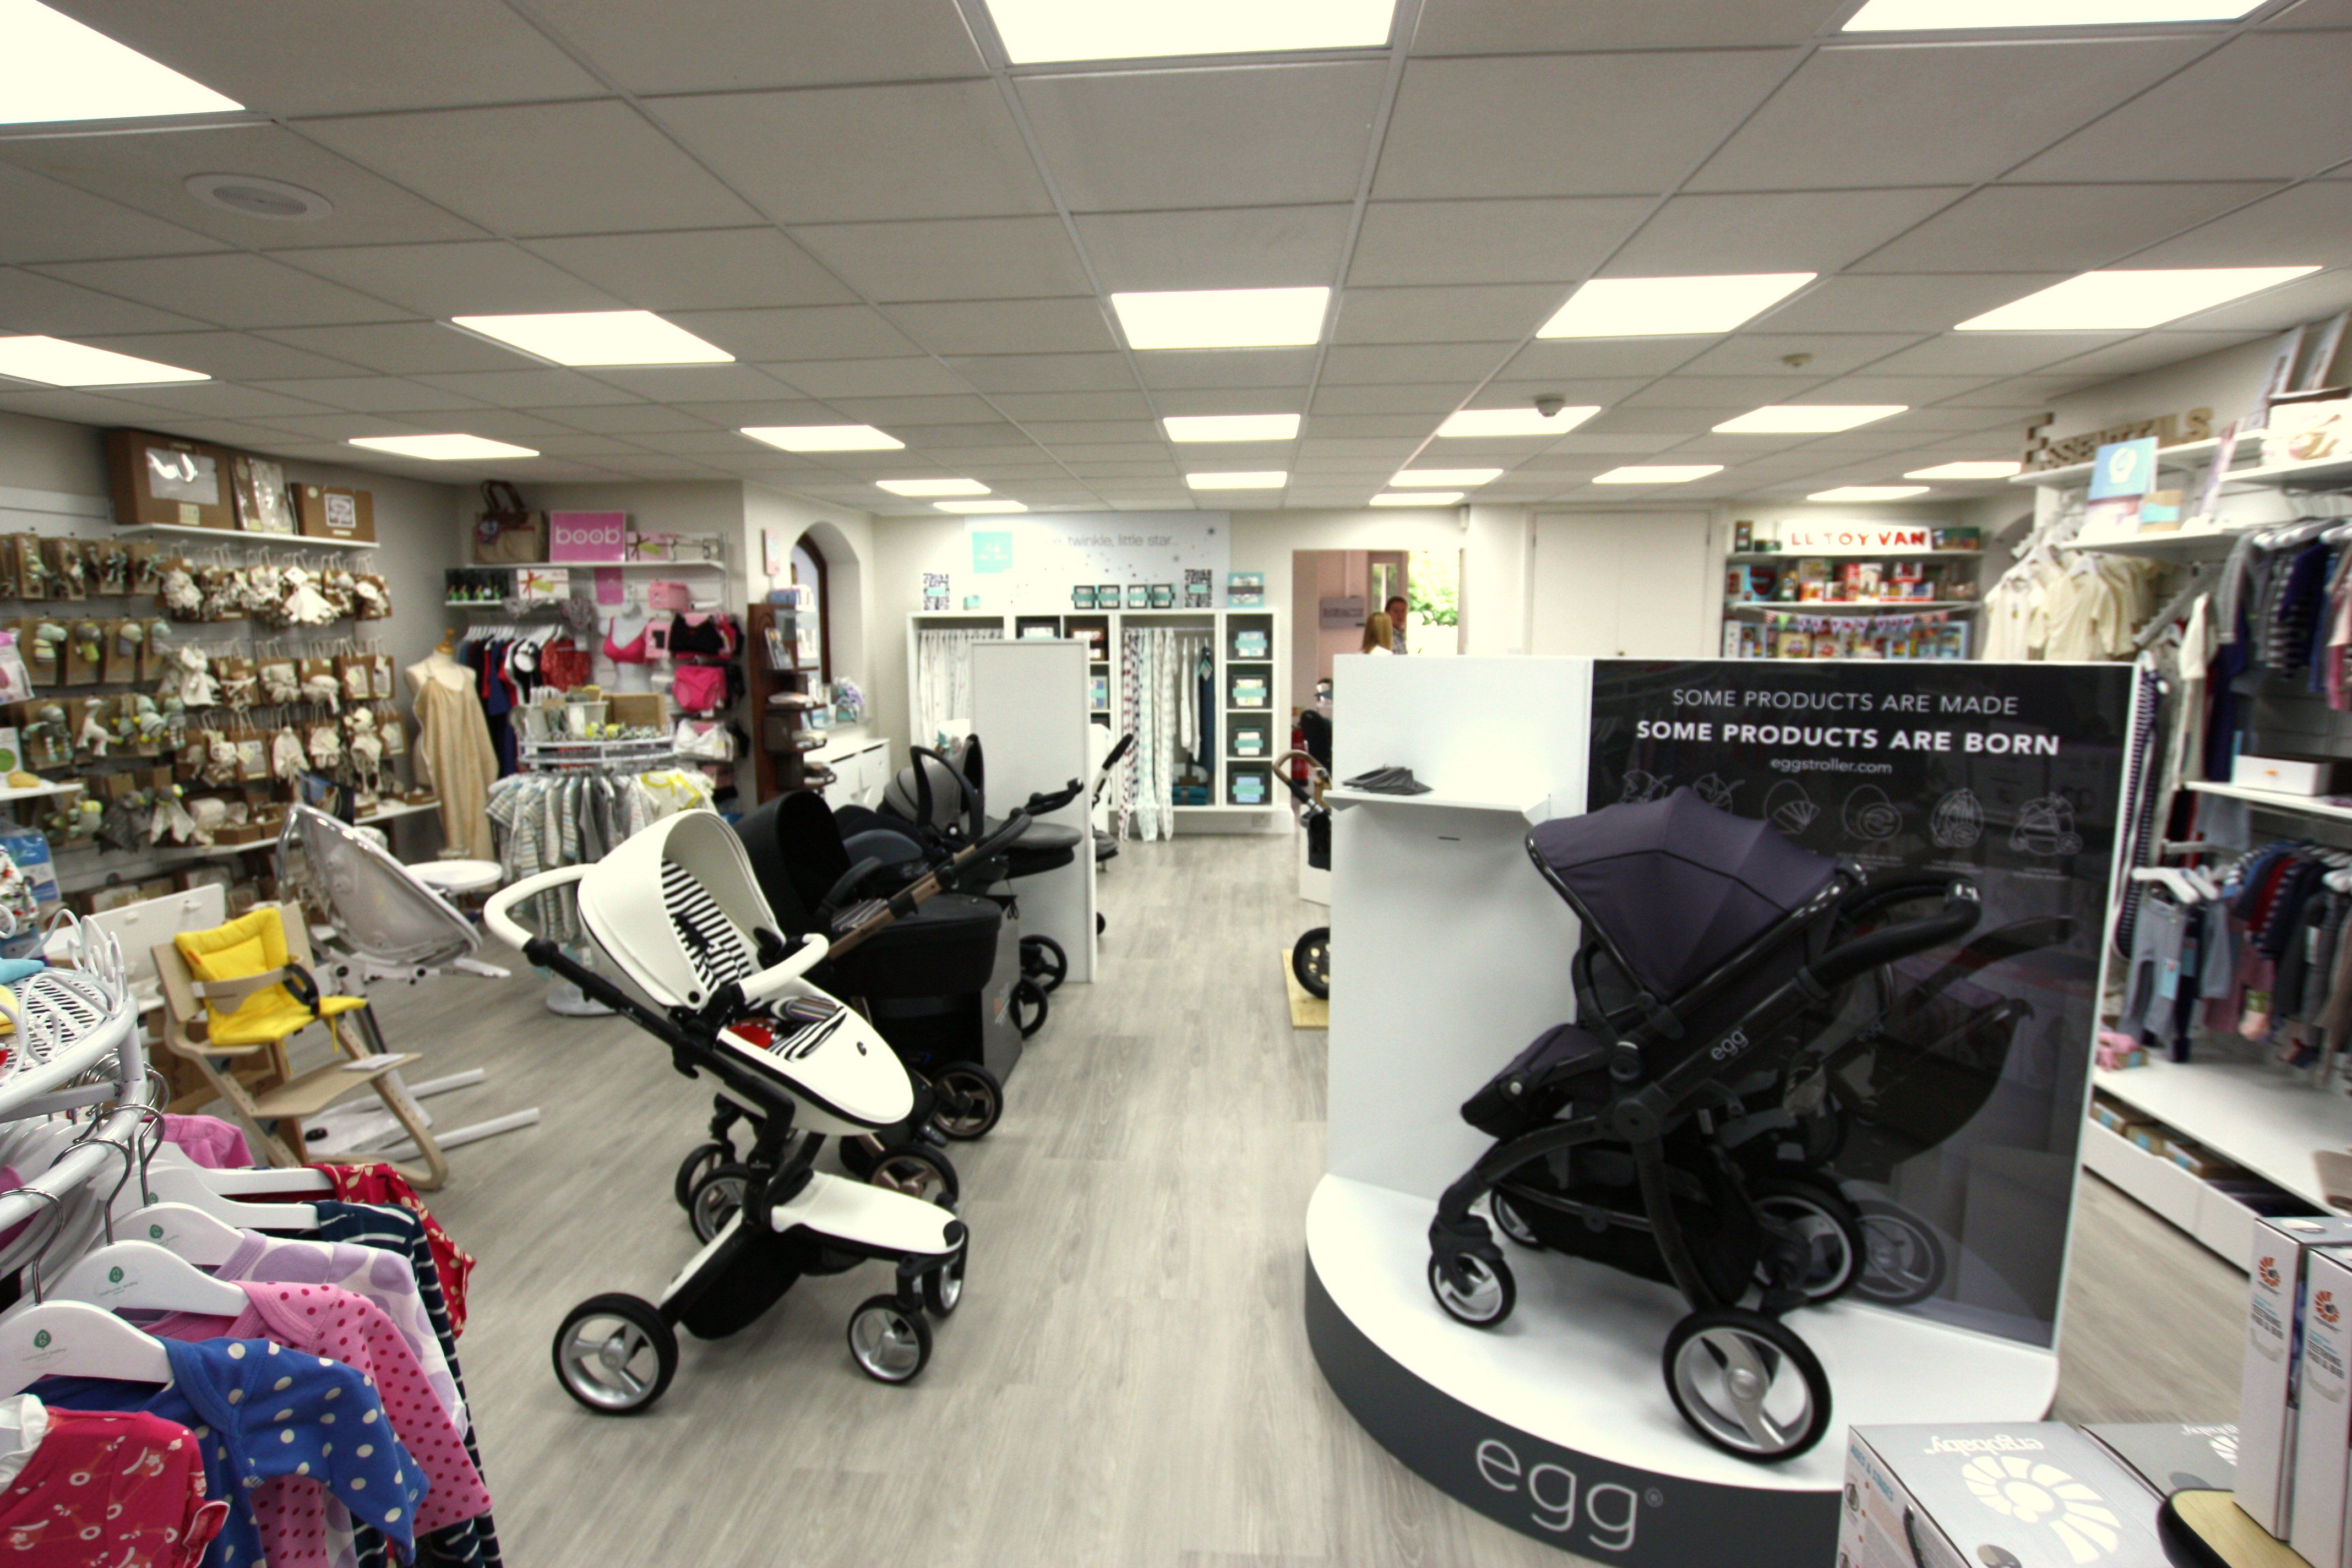 Our stroller display in our Bagshot baby store featuring